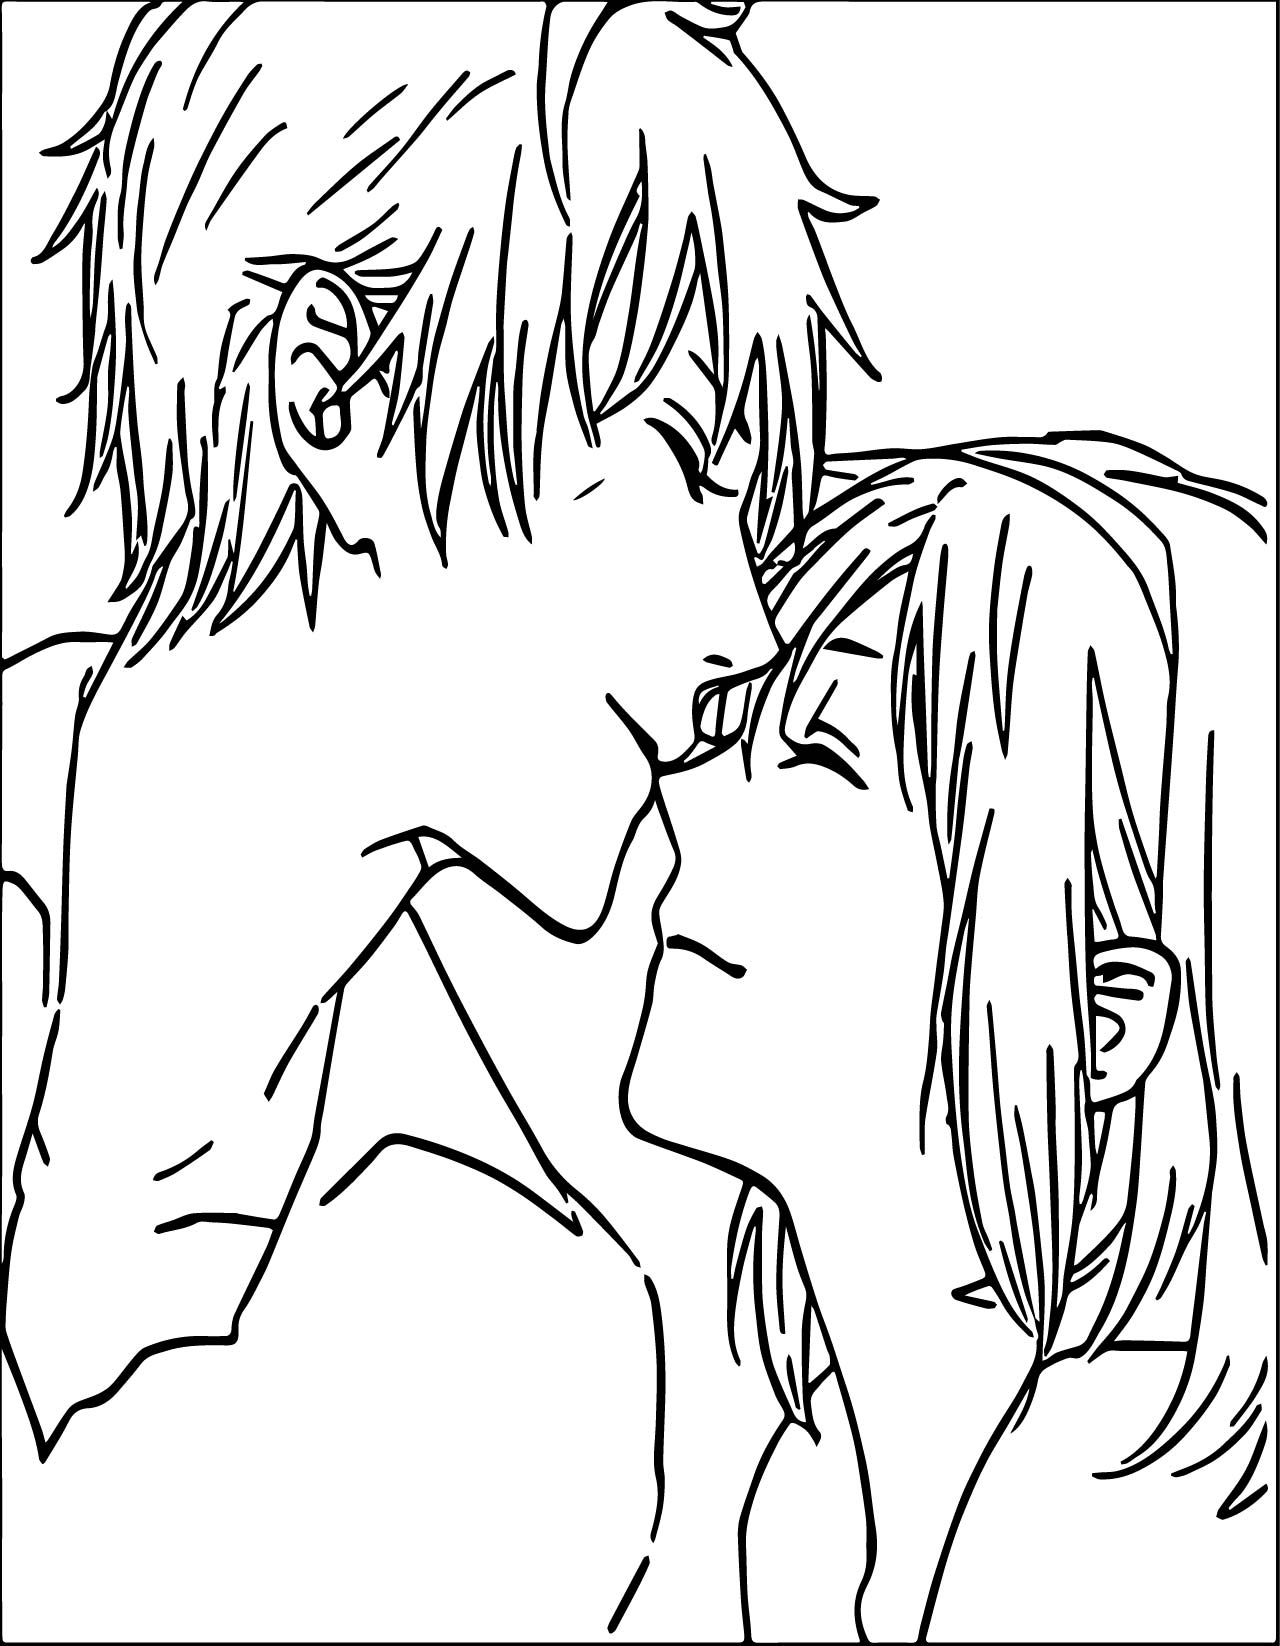 Awesome Anime Boy And Girl Couple Love Coloring Page Love